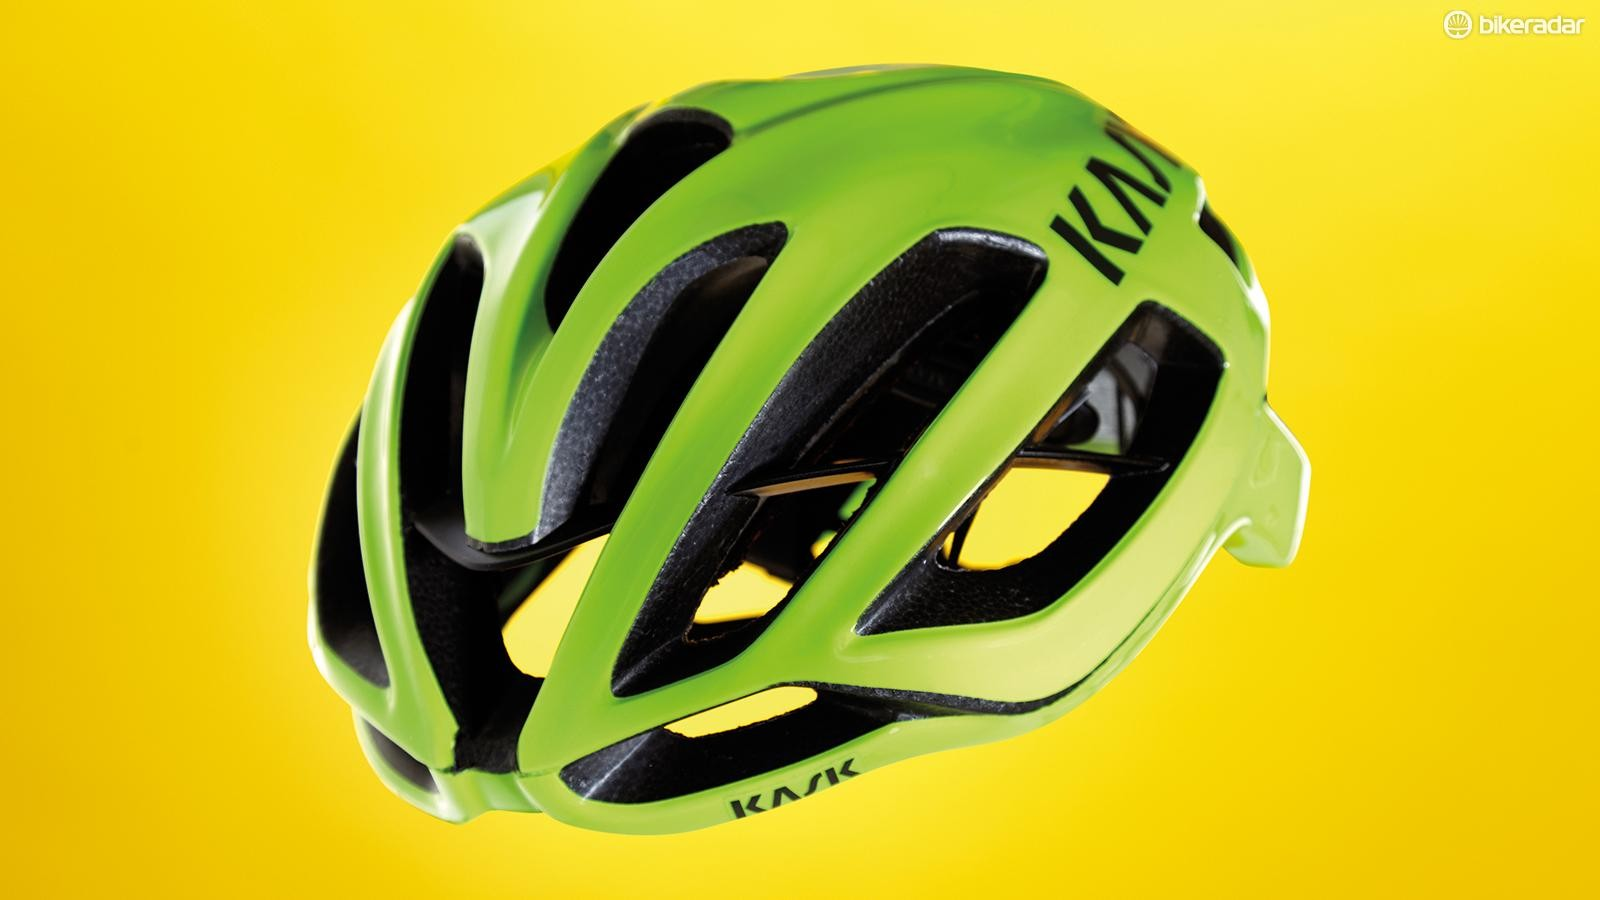 The Kask Protone helmet delivers formidable comfort, performance and looks — but at a price